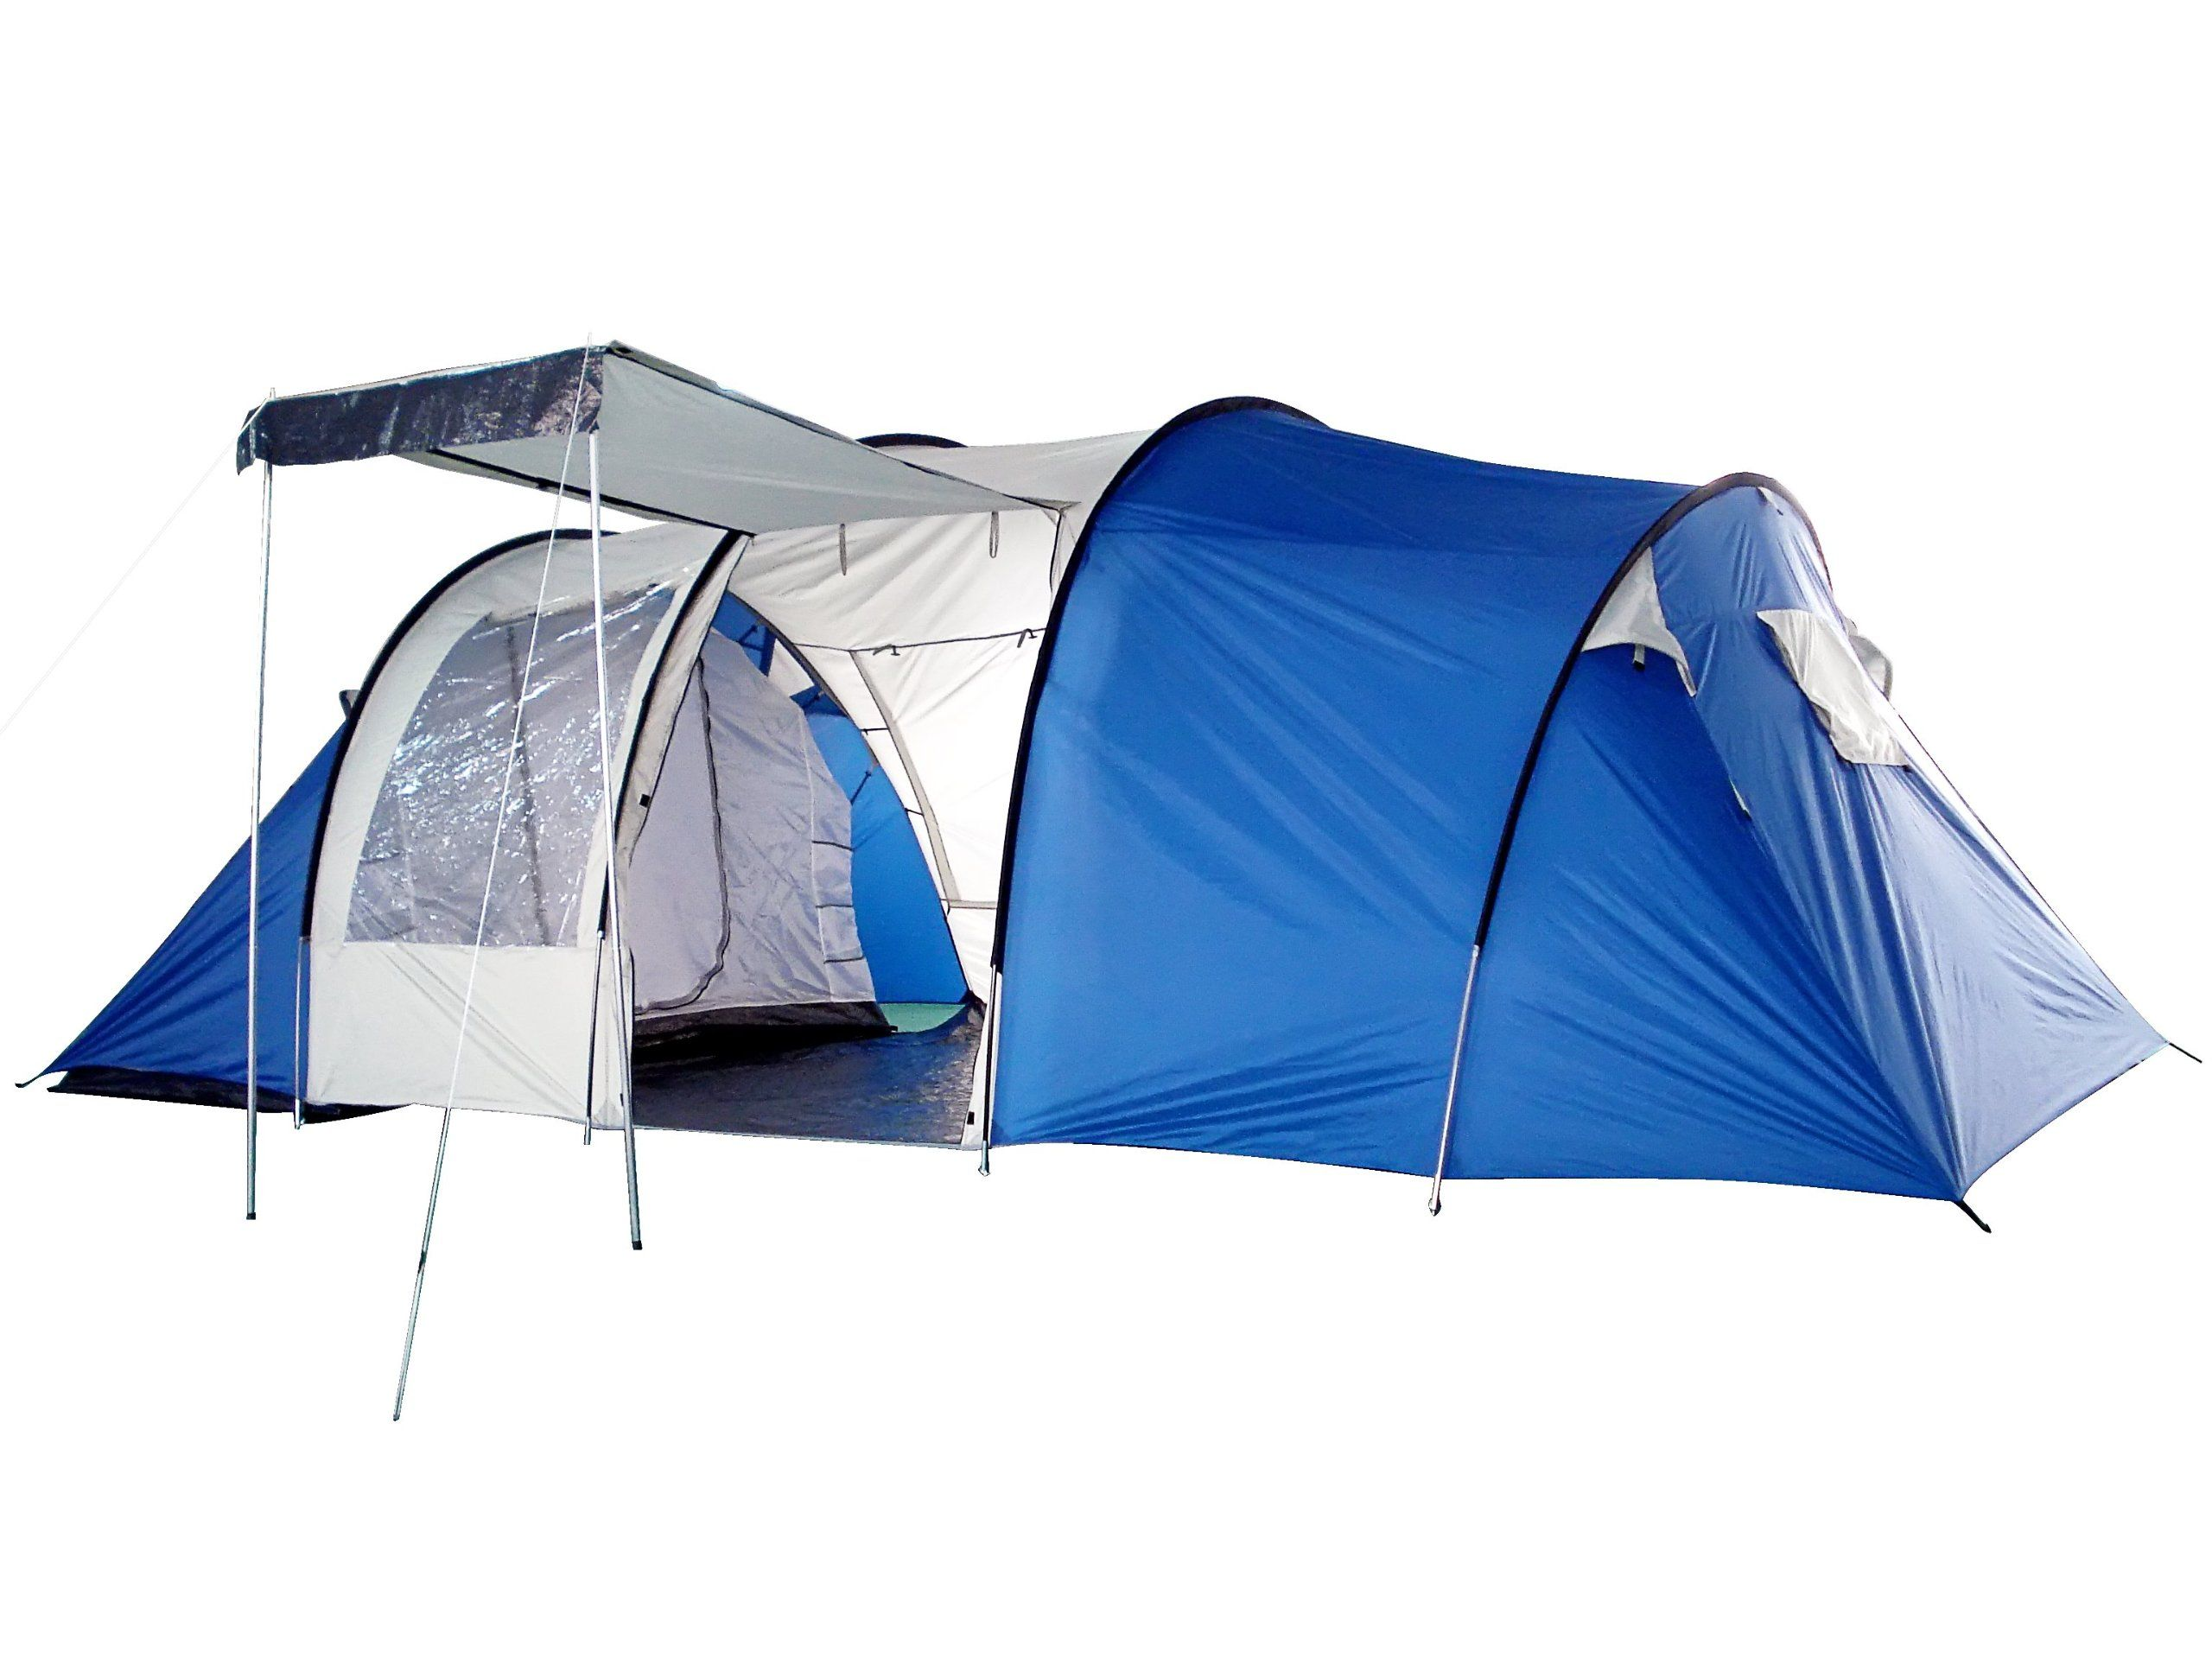 Outwell Nevada XL - #c&ing #tent | C&ing | Pinterest | Tents C&ing and Outdoor clothing  sc 1 st  Pinterest & Outwell Nevada XL - #camping #tent | Camping | Pinterest | Tents ...